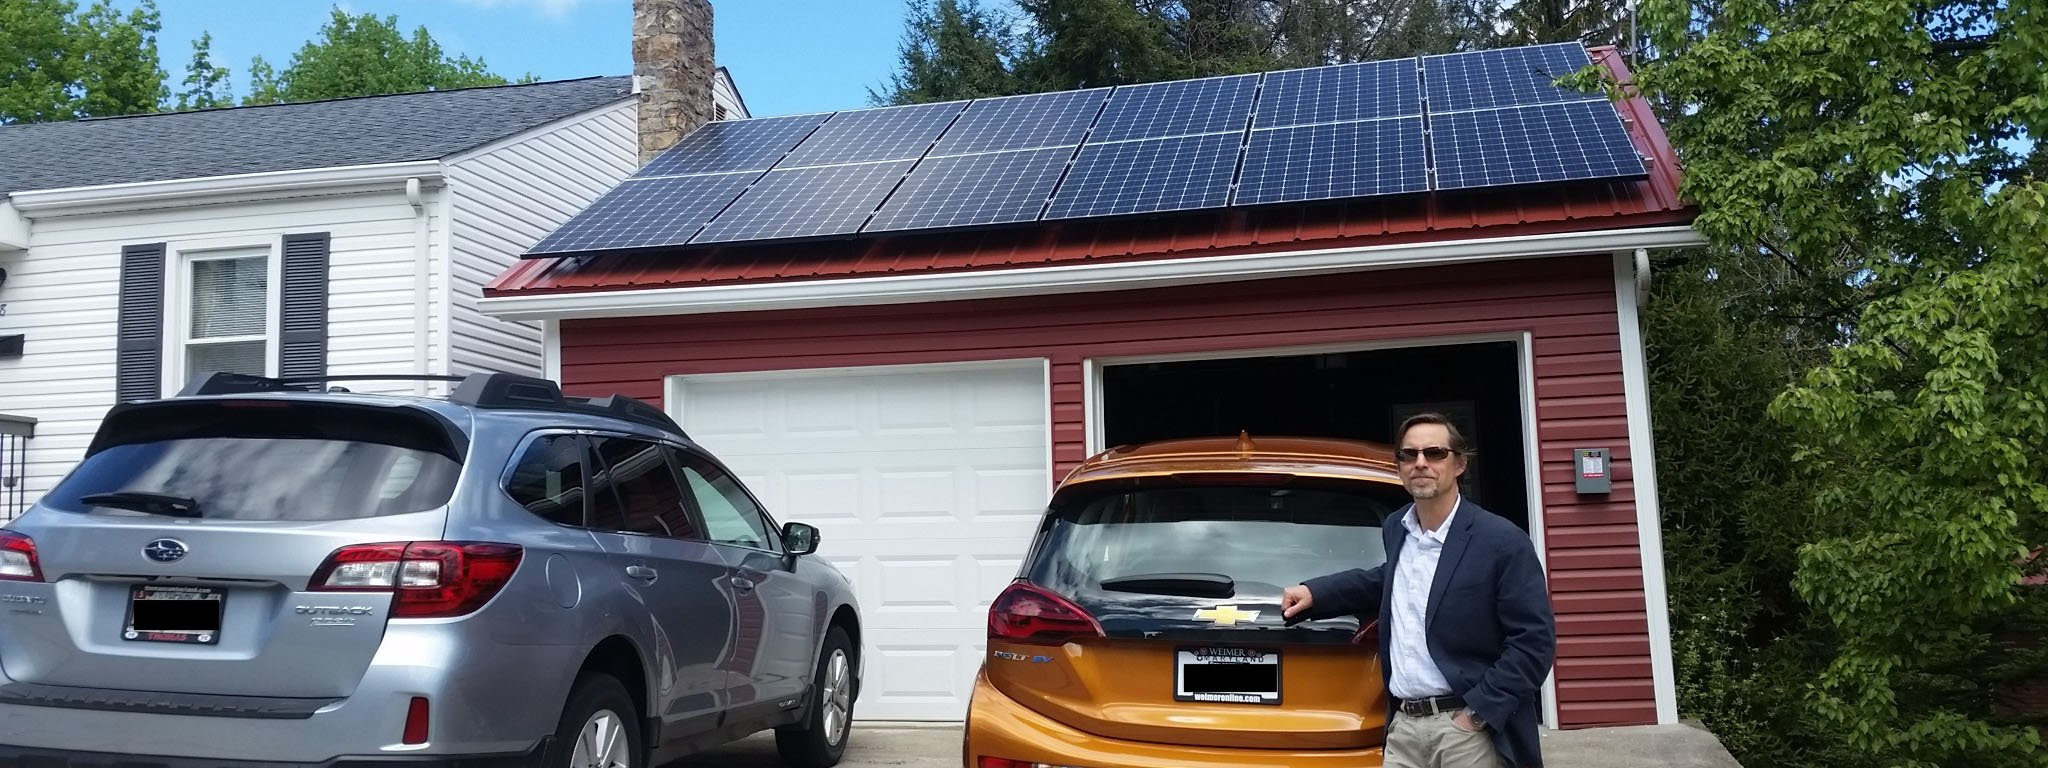 Act now to keep Pennsylvania HOAs in check | Solar United Neighbors